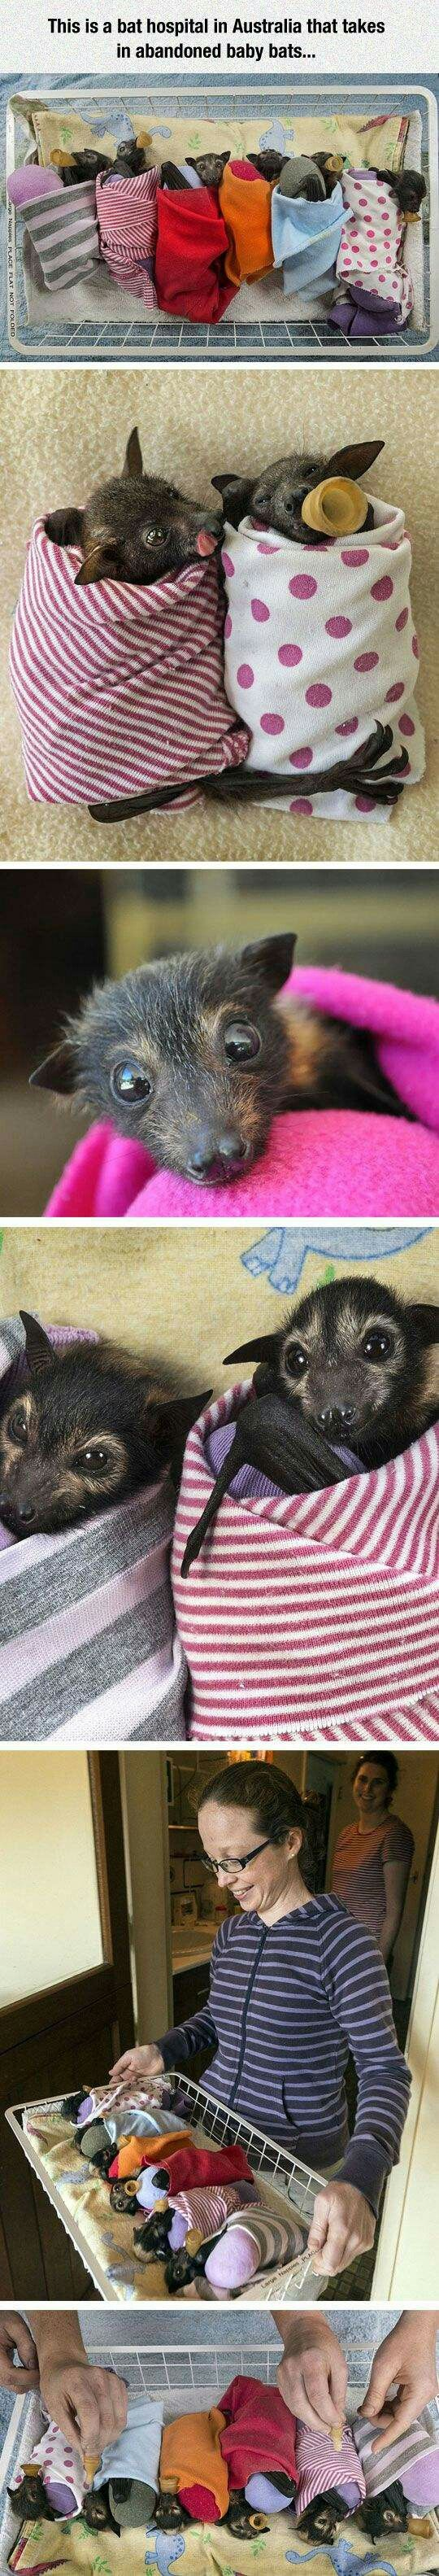 Who says bats aren't cute. Seriously who did so I can walk up to them and punch their kidneys 134 times